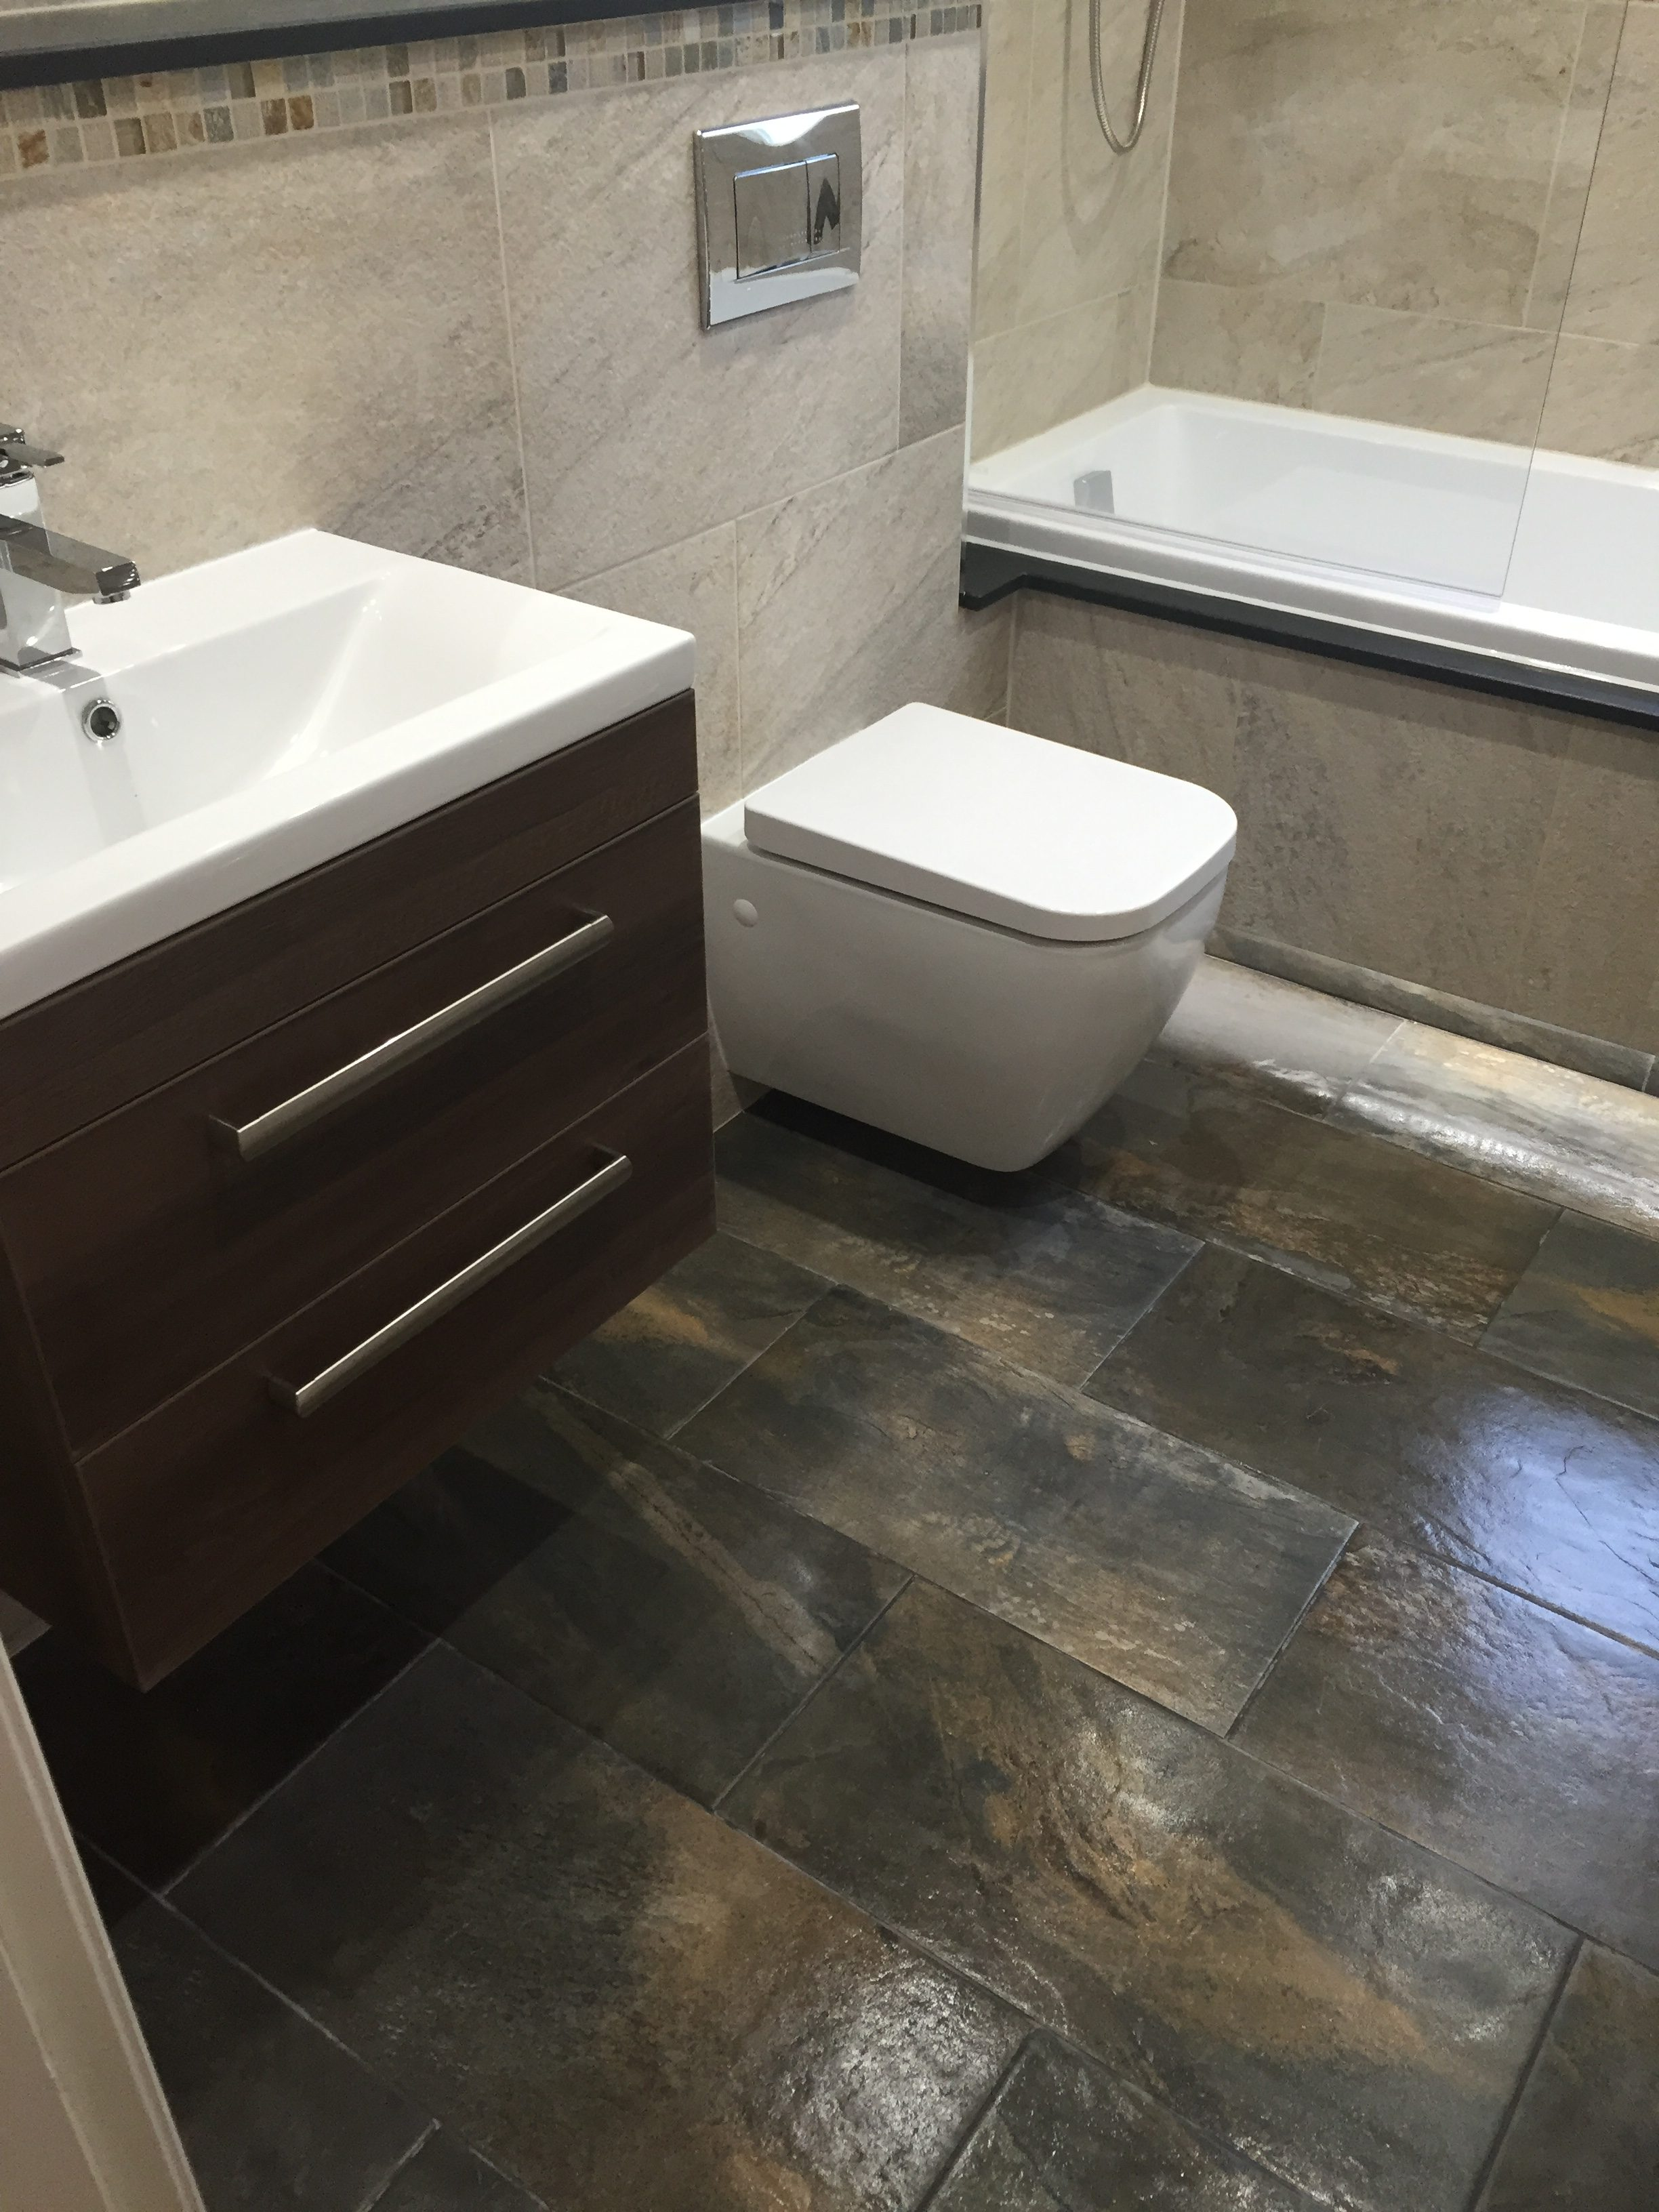 Stone archives fylde tiles the tiling work has been completed by graham knight 07781 7728031 and the job was managed by adrian lewis joinery 07885 217024 dailygadgetfo Image collections